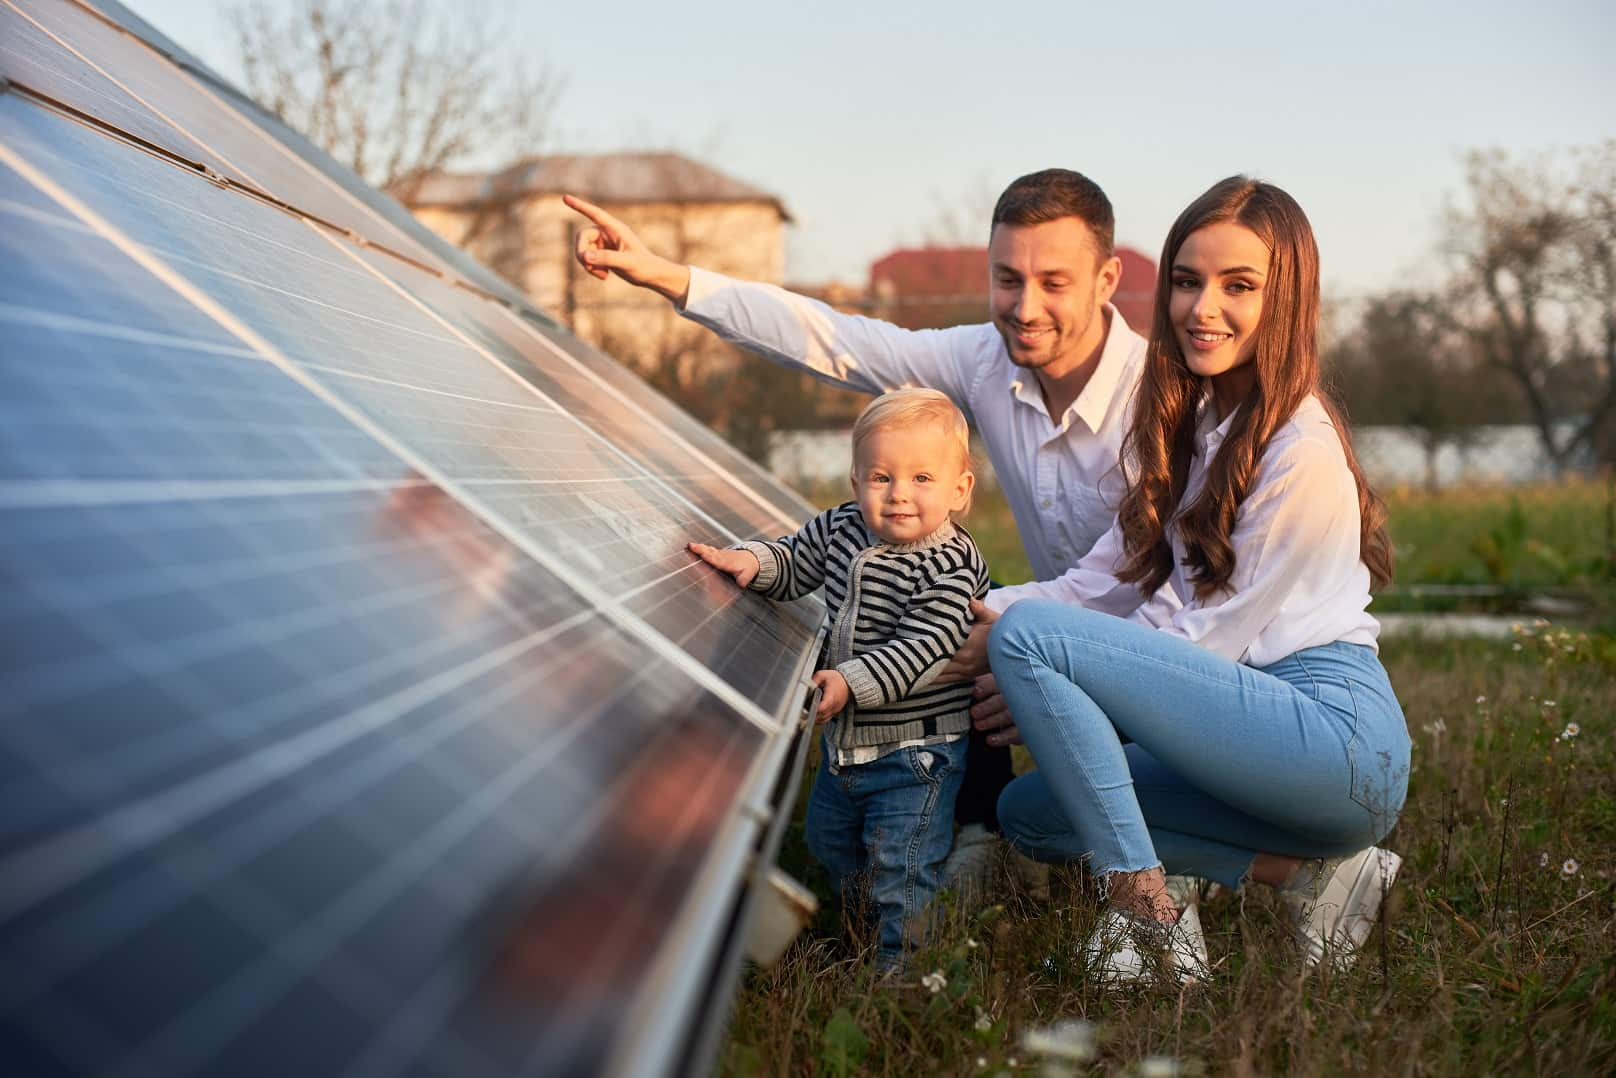 How To Pick The Right Solar System For Your Home. Happy family which is energy secured and ecolological with solar energy